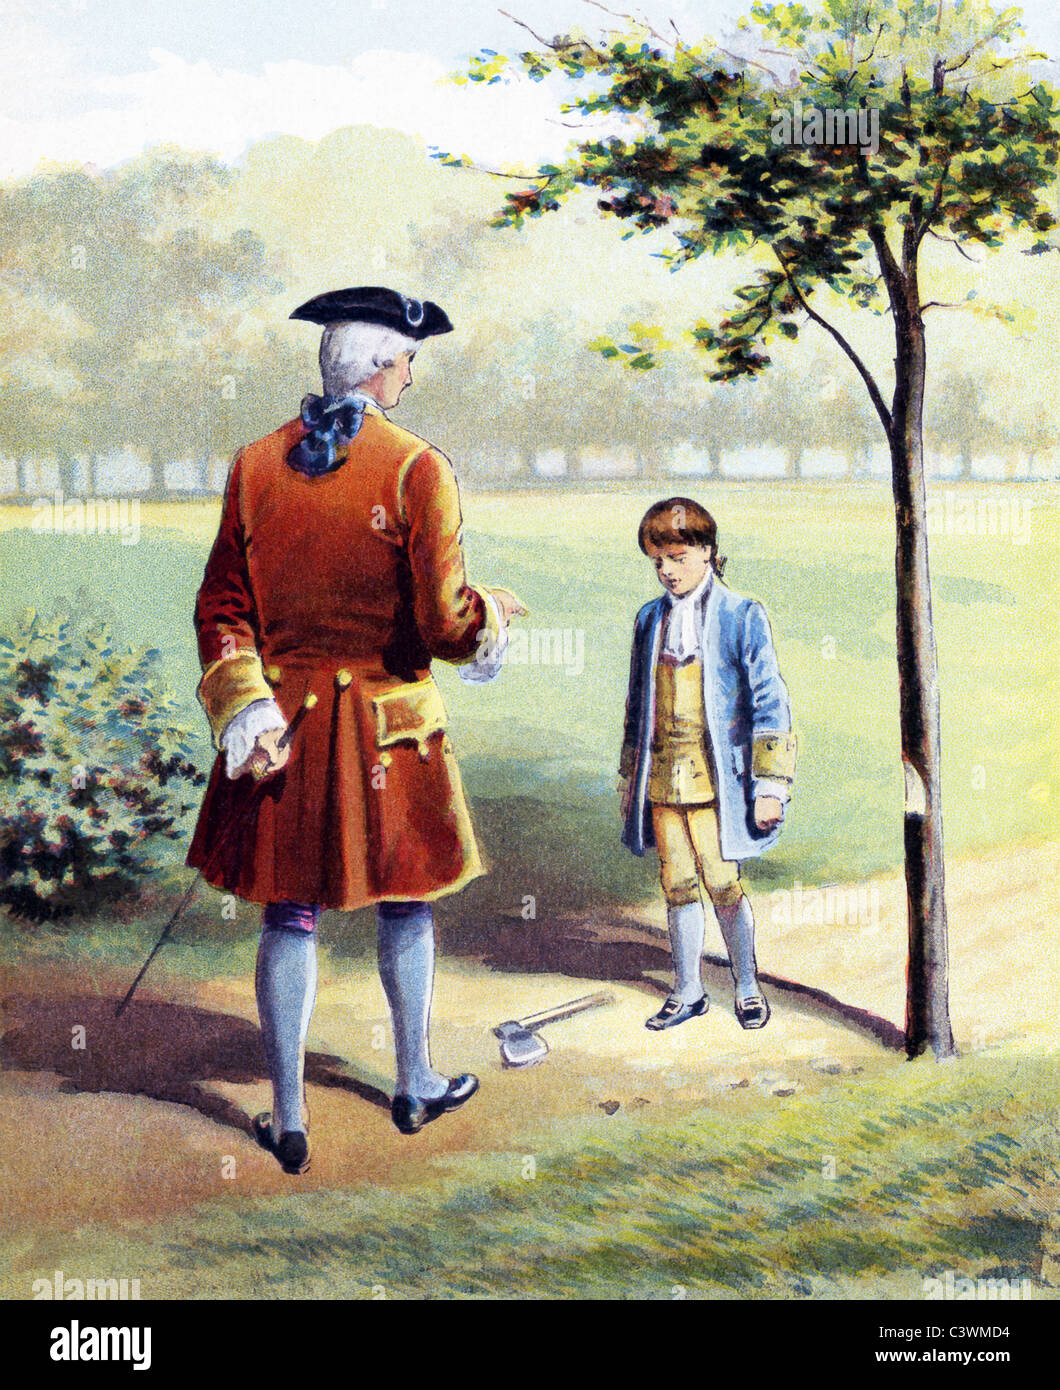 Tradition says when Washington's father asked if he had chopped ...